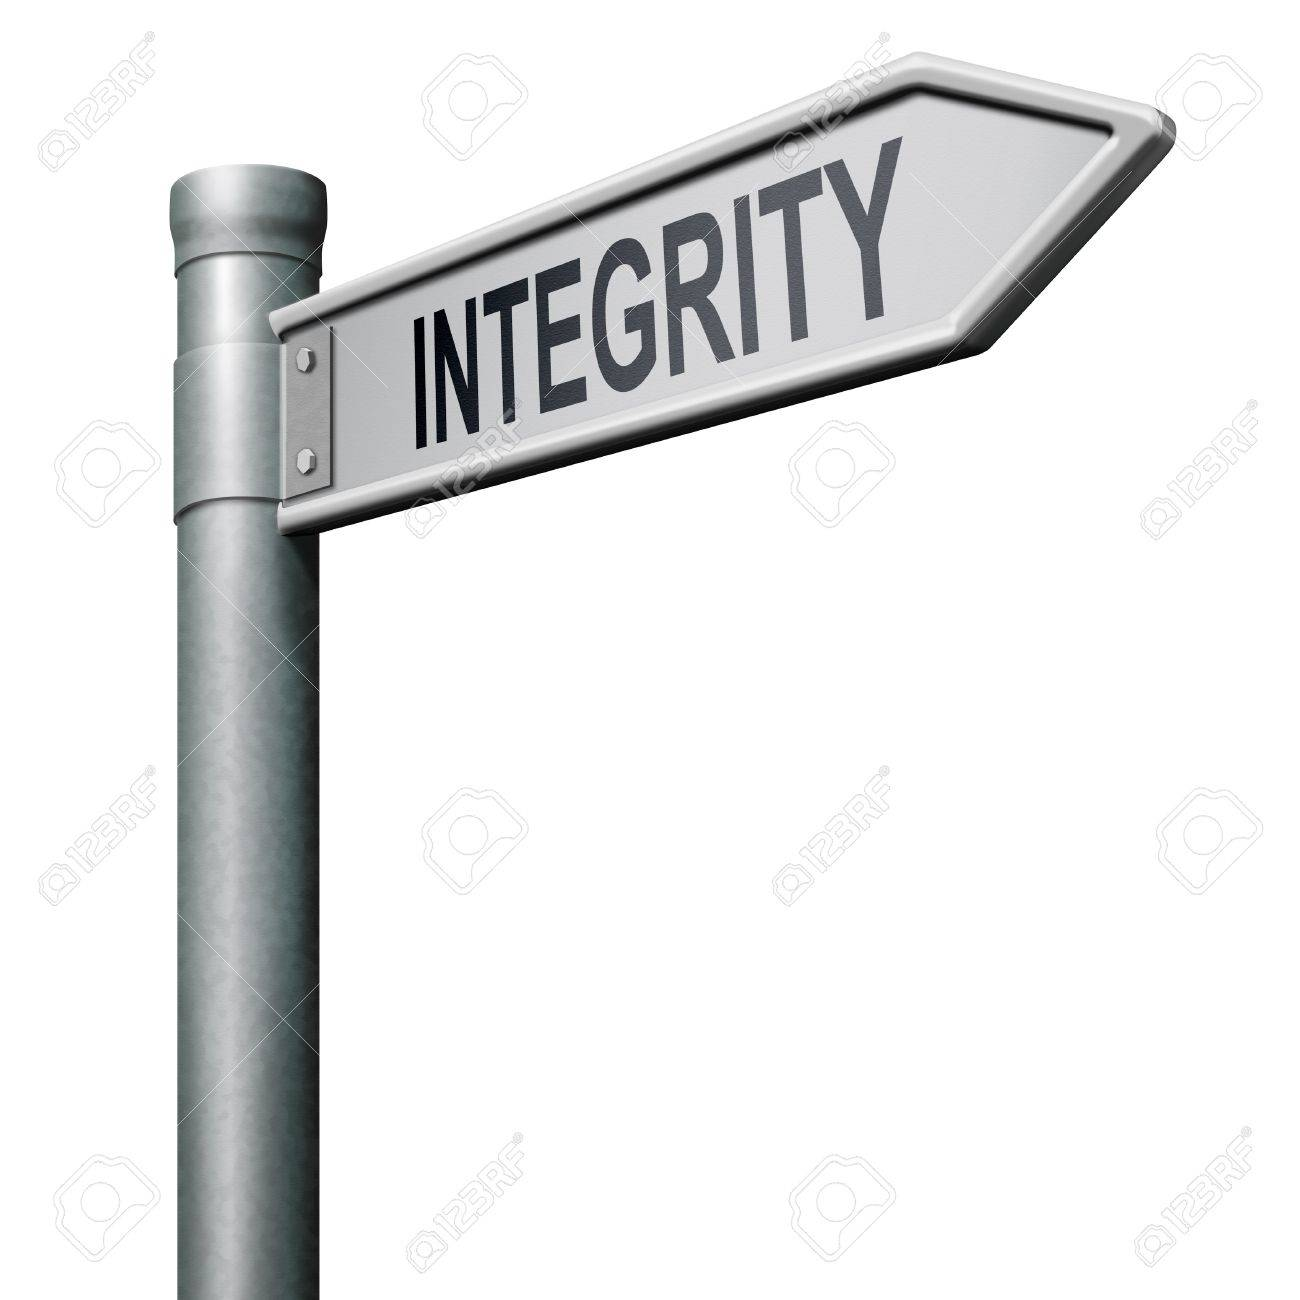 Integrity authentic and honest and reliable guidance stock photo integrity authentic and honest and reliable guidance stock photo 8406529 biocorpaavc Image collections